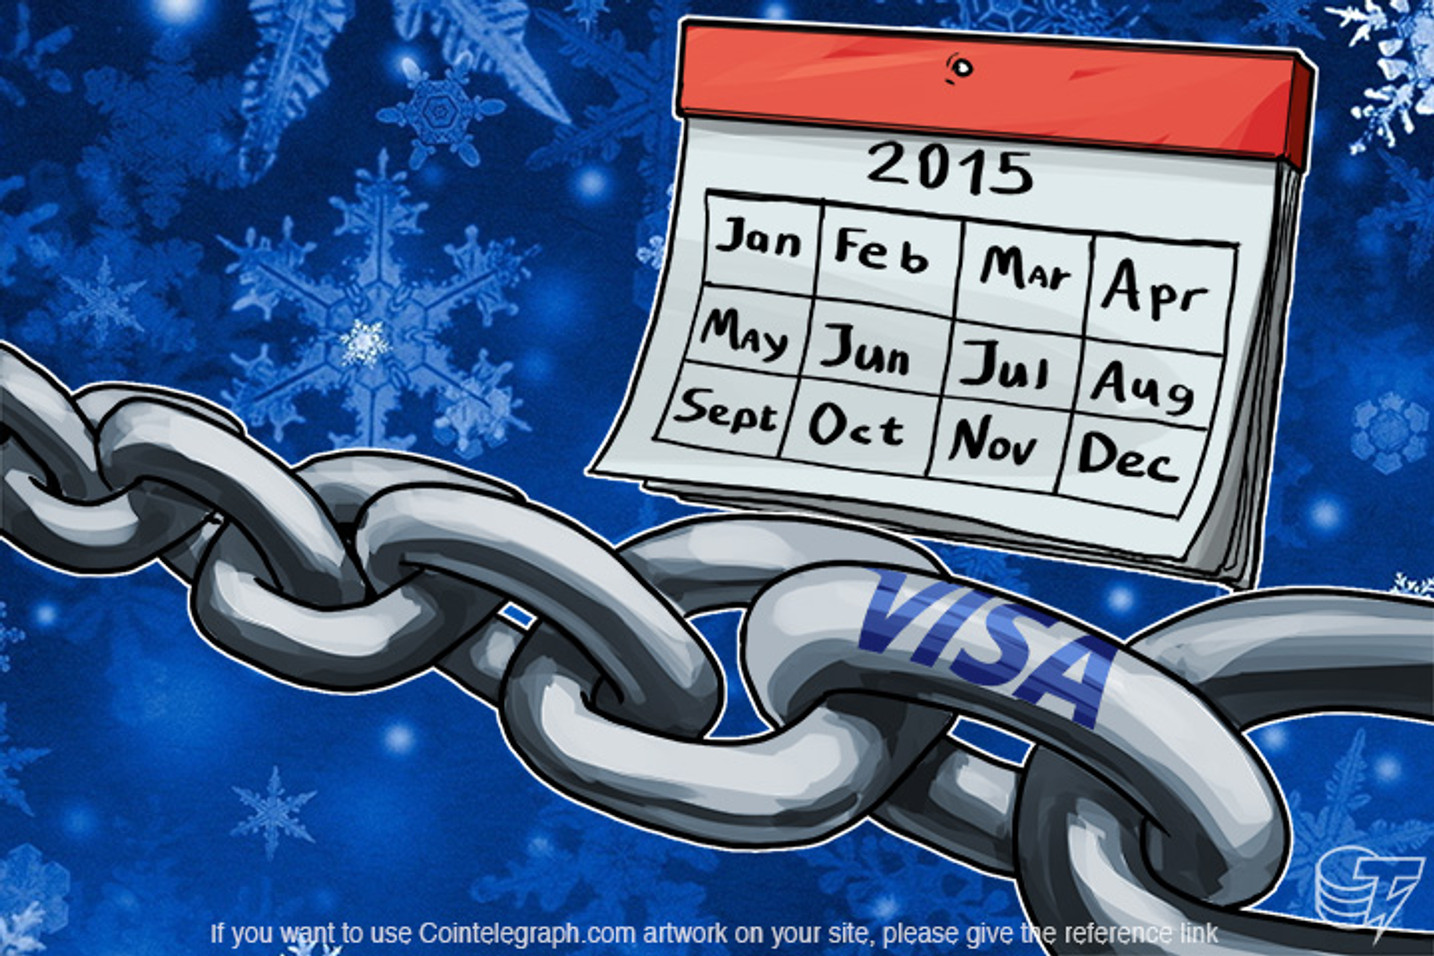 Visa: 2015 Has Turned The Blockchain Into Something The Industry Has To Live With